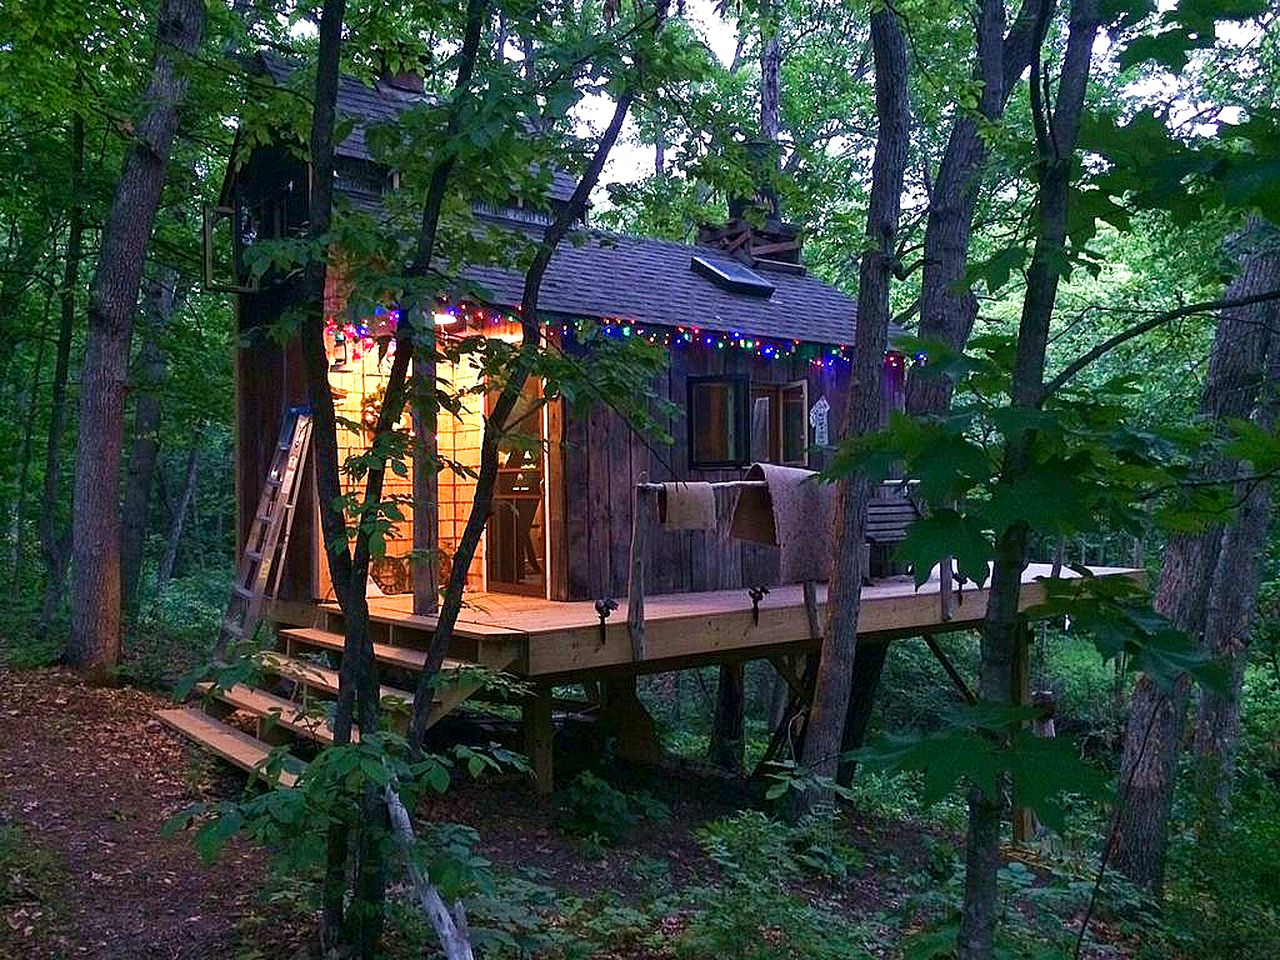 Tree house with christmas lights in Nauvoo, Illinois for a weekend getaway in the forest.